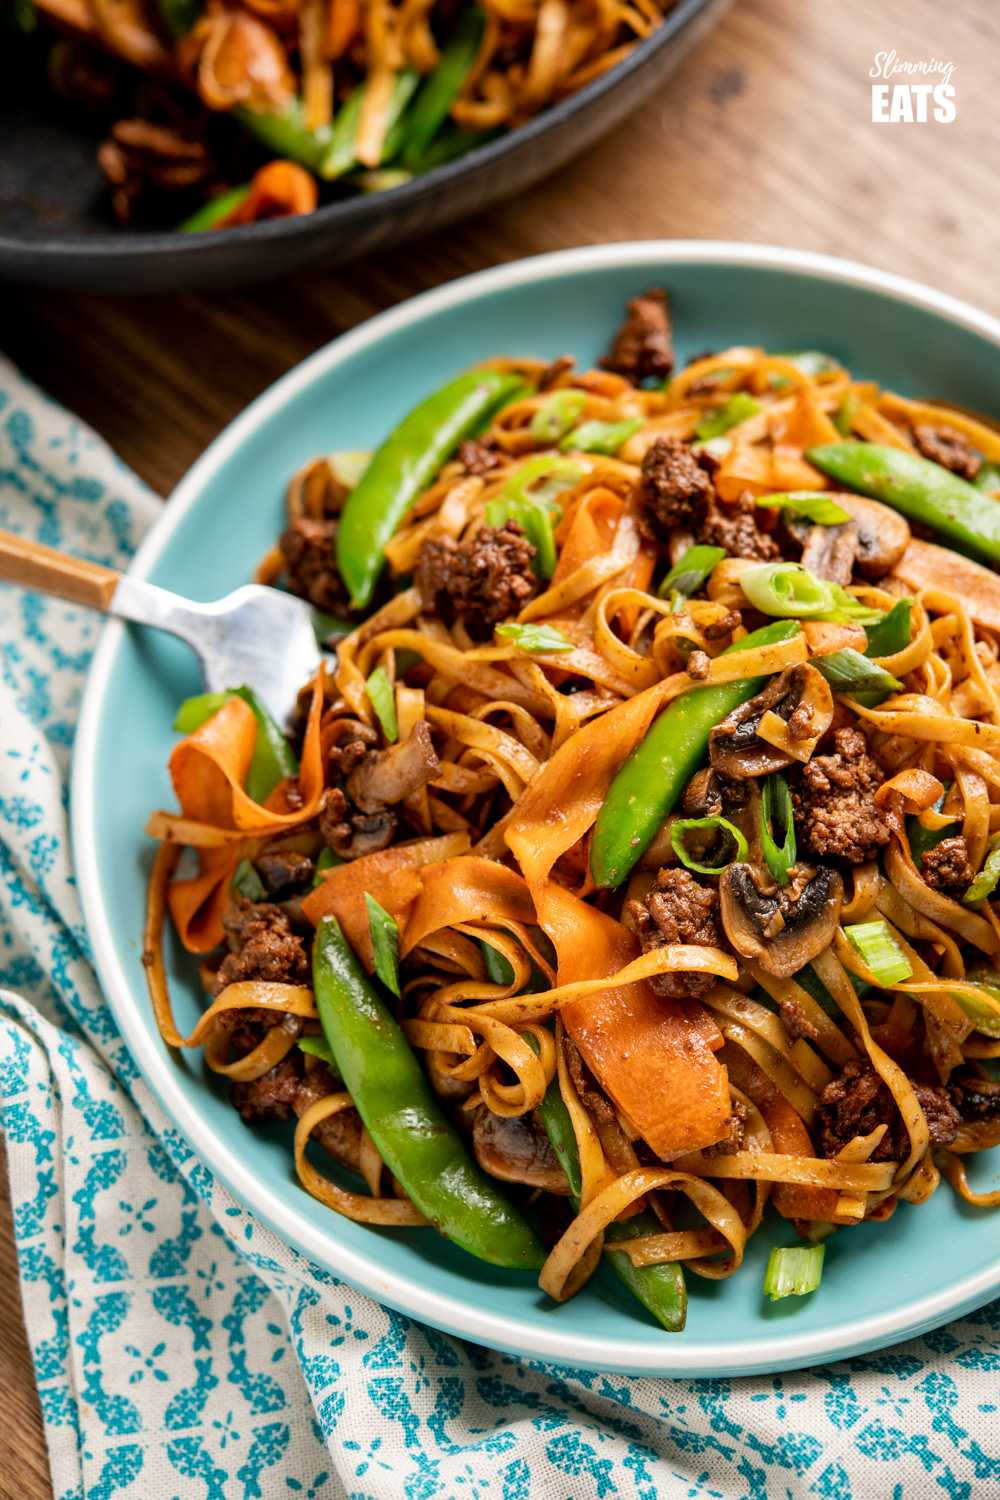 Quick Hoisin Beef Noodle Stir Fry Slimming Eats